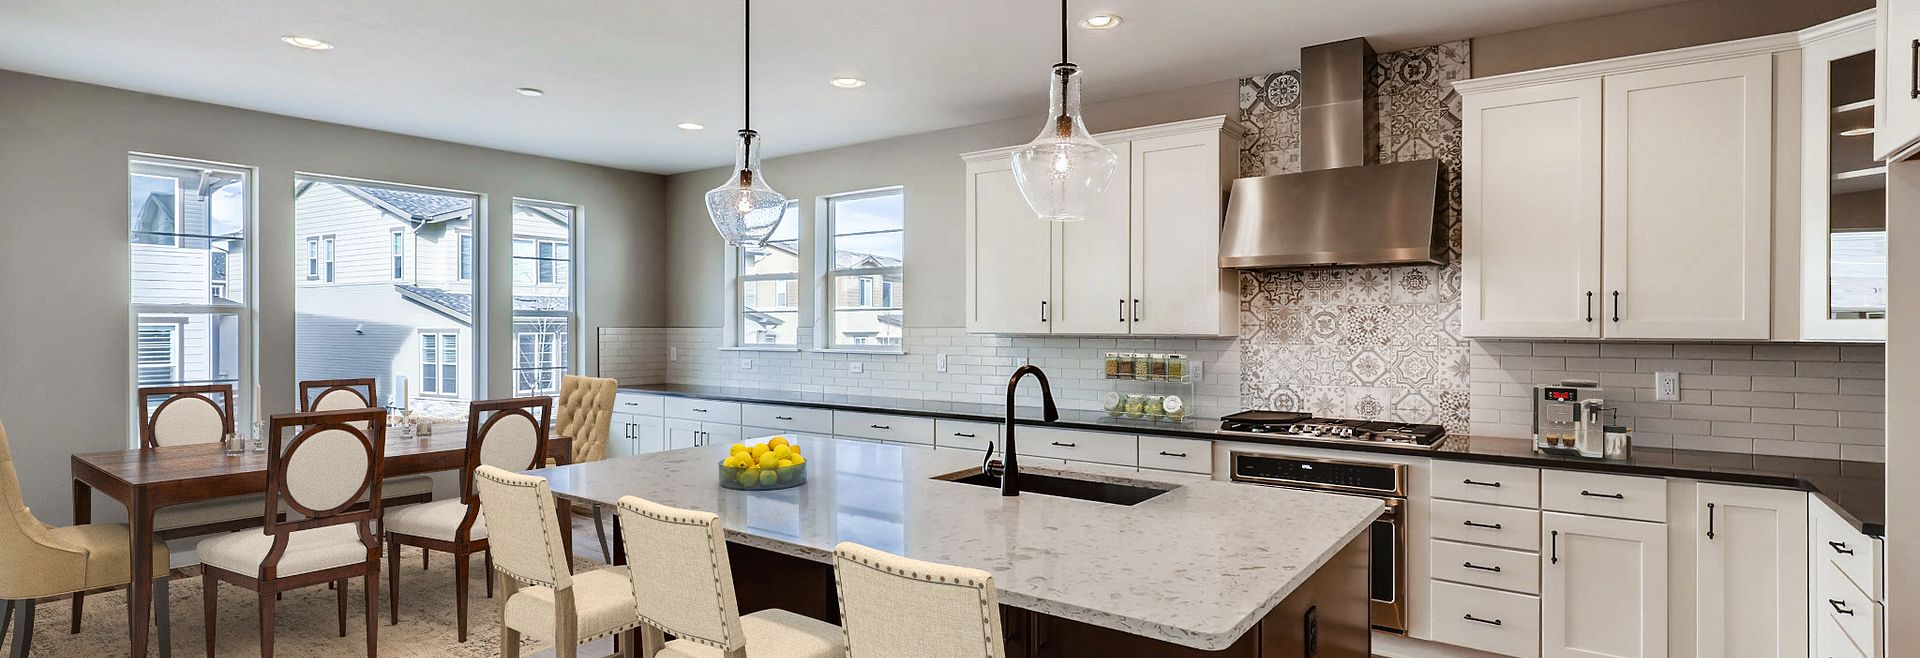 Colliers Hill Peakview Suncatcher Kitchen and Dining